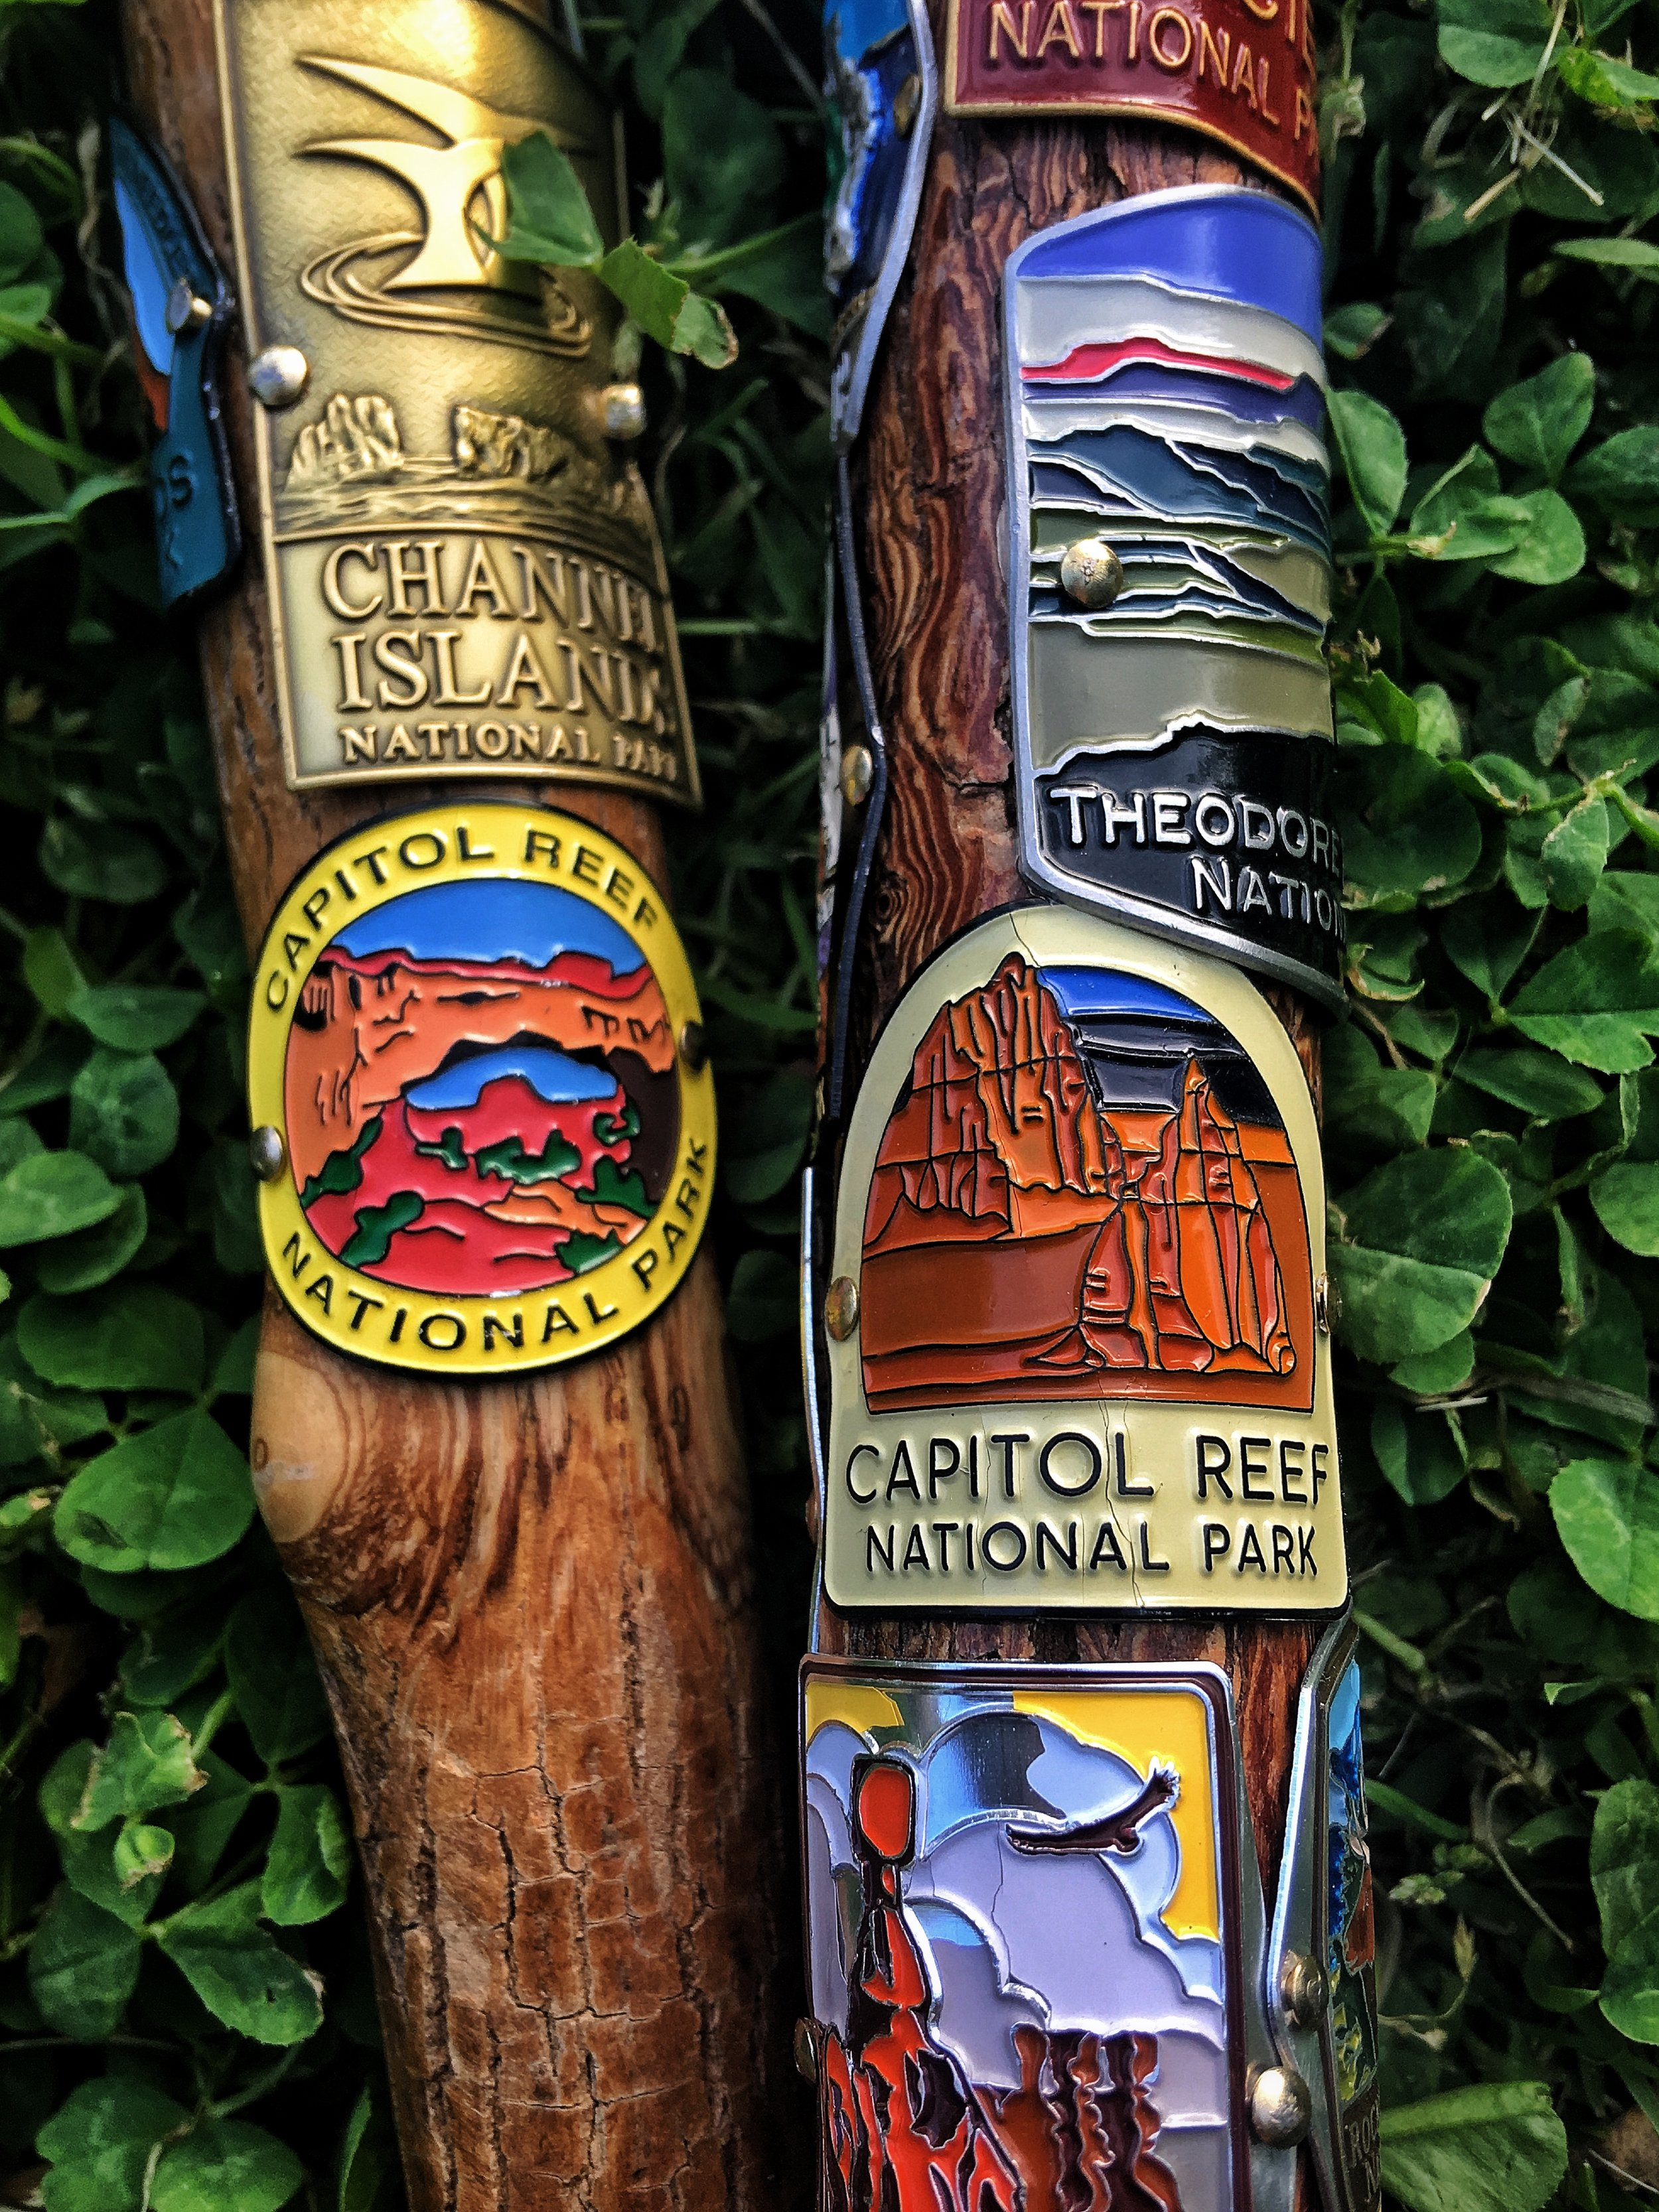 Hiking stick medallions from Capitol Reef National Park in southern Utah.